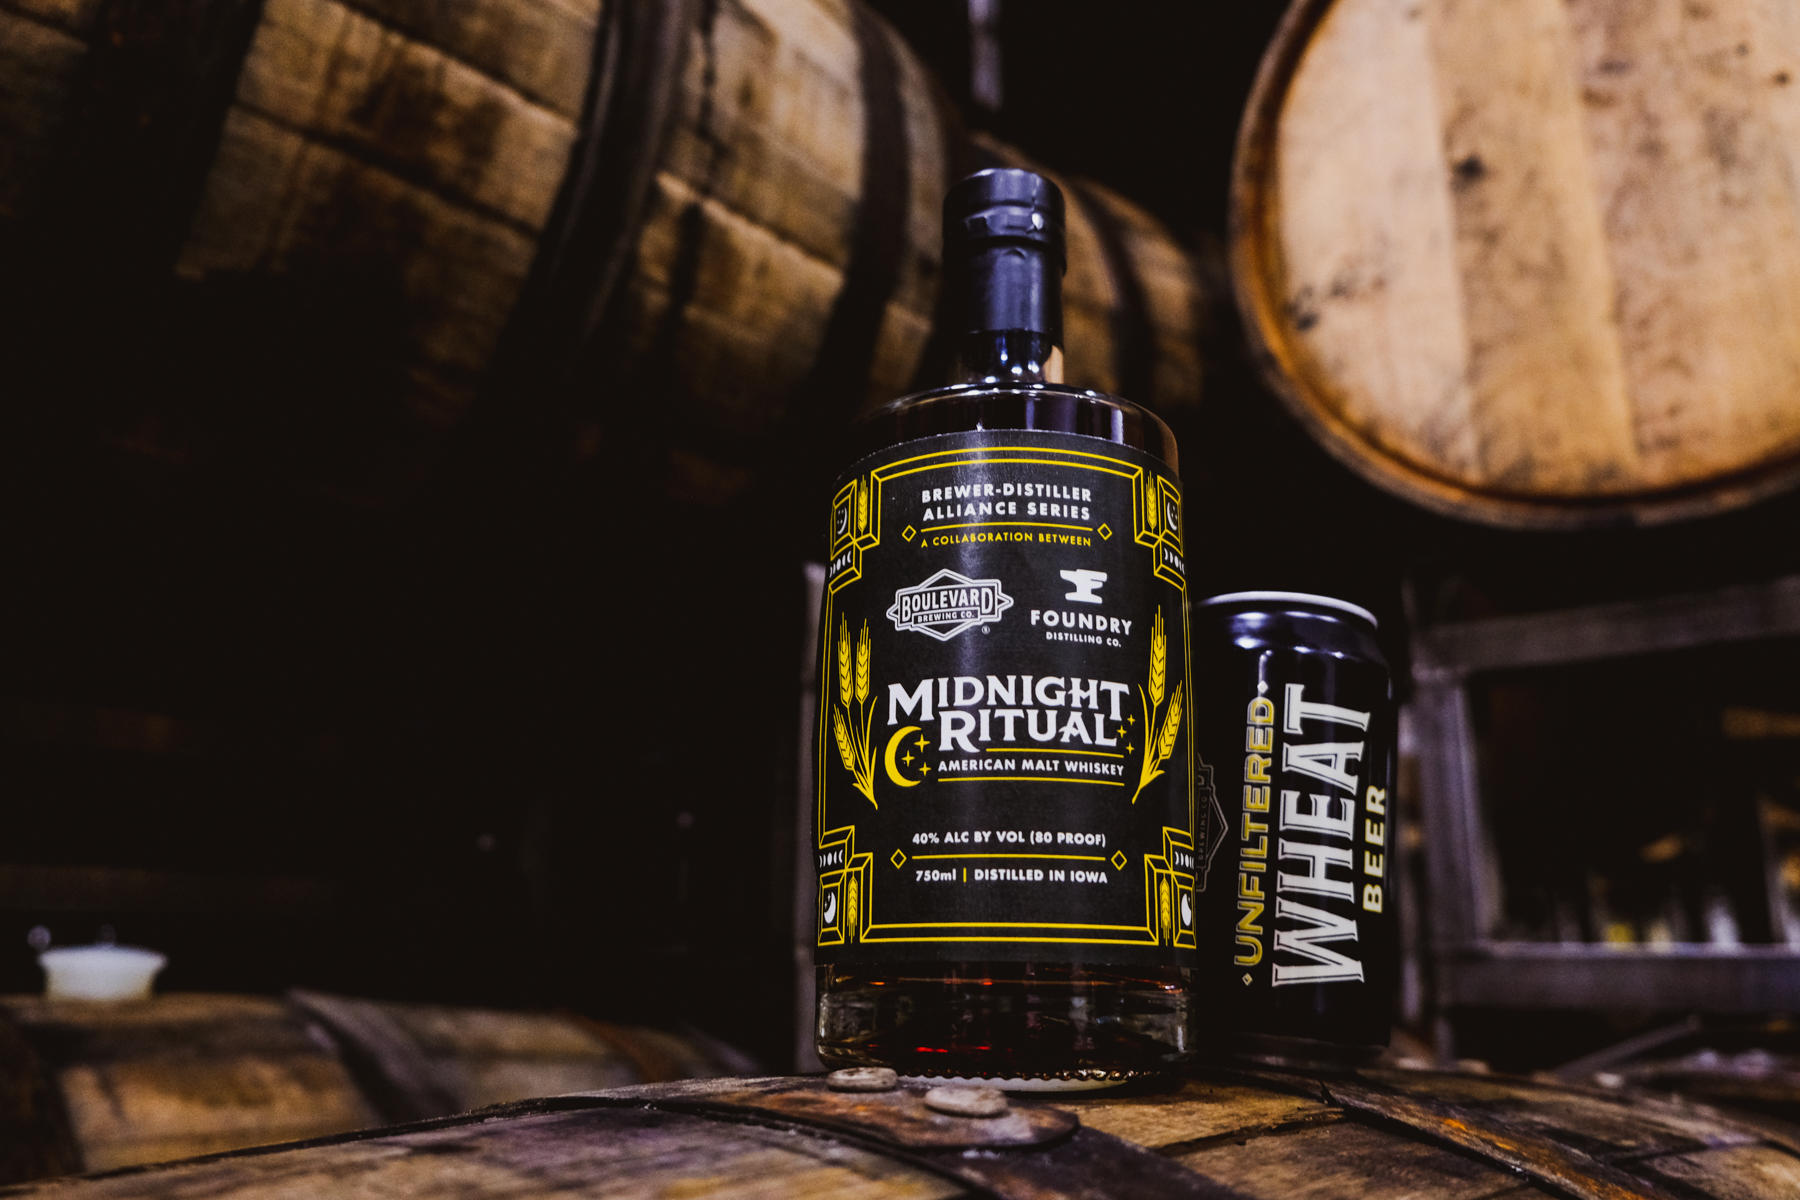 Midnight Ritual: A Boulevard Brewing Co. + Foundry Distilling Co. Collaboration